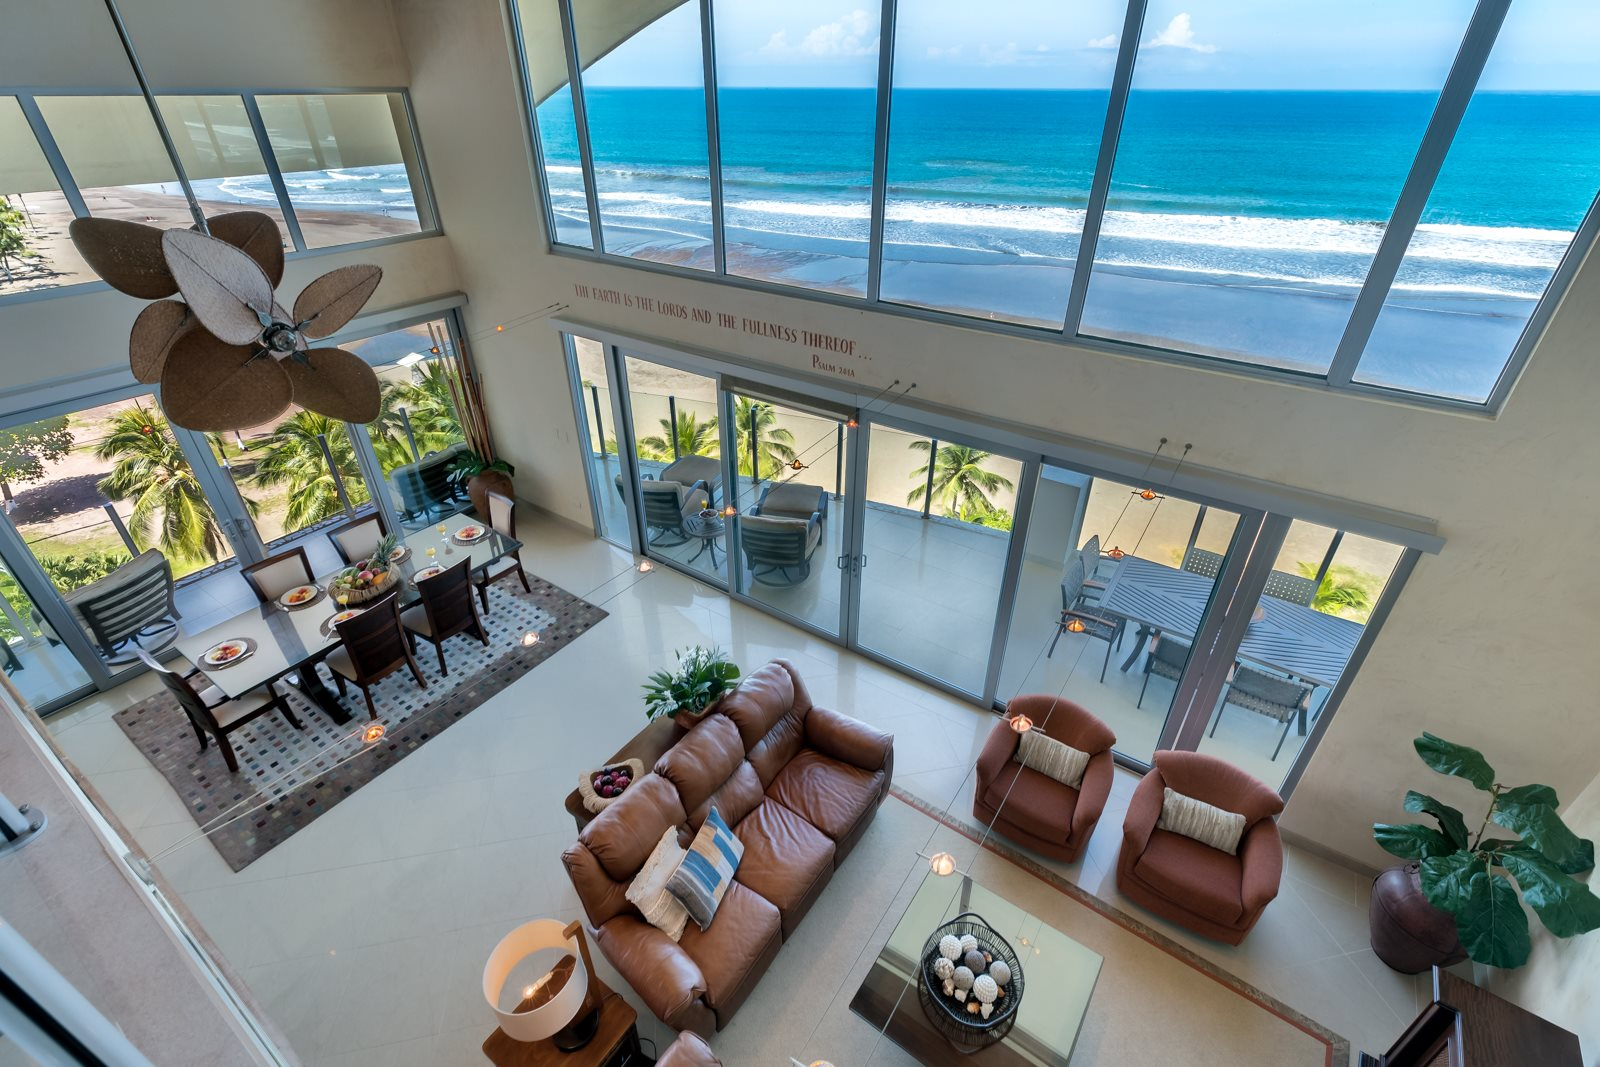 4 Bedroom Luxury Ocean View Penthouse Wrap Around Balconies-FINANCING AVAILABLE